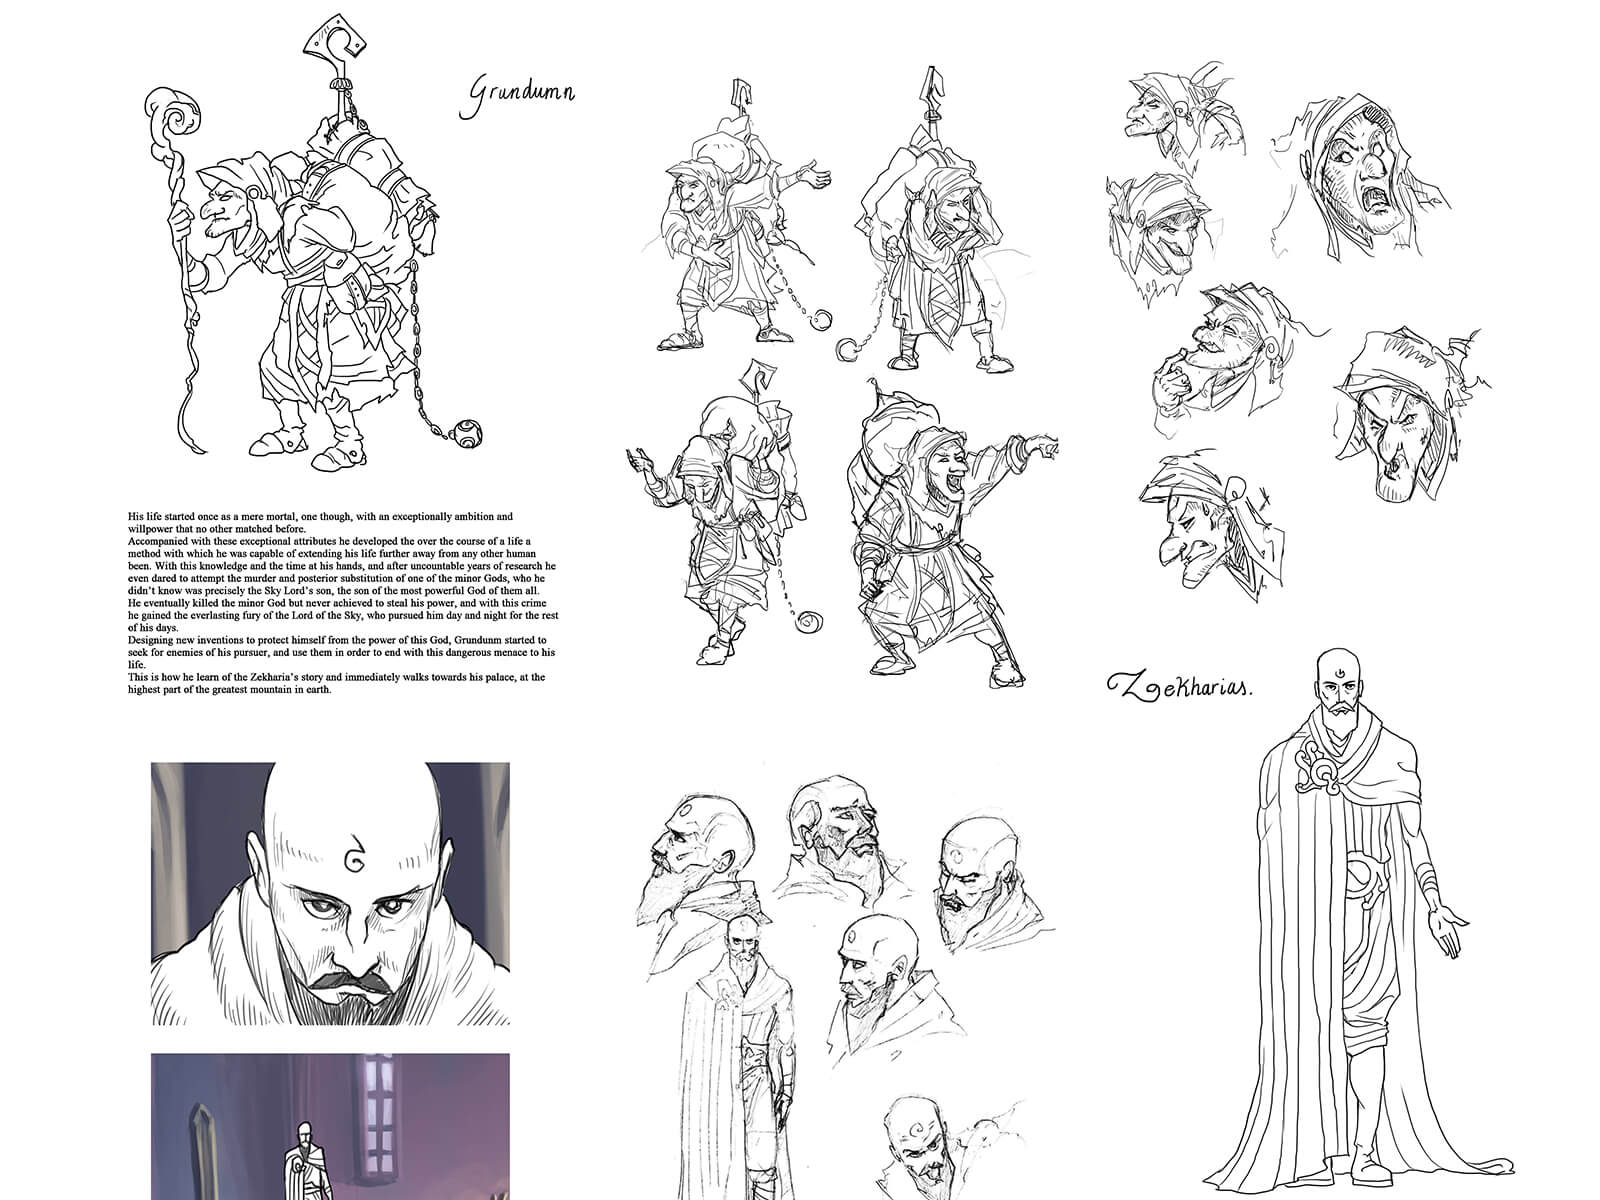 Black-and-white sketches of a hunched over goblin with a large rucksack and a tall, bald robed man with a beard.